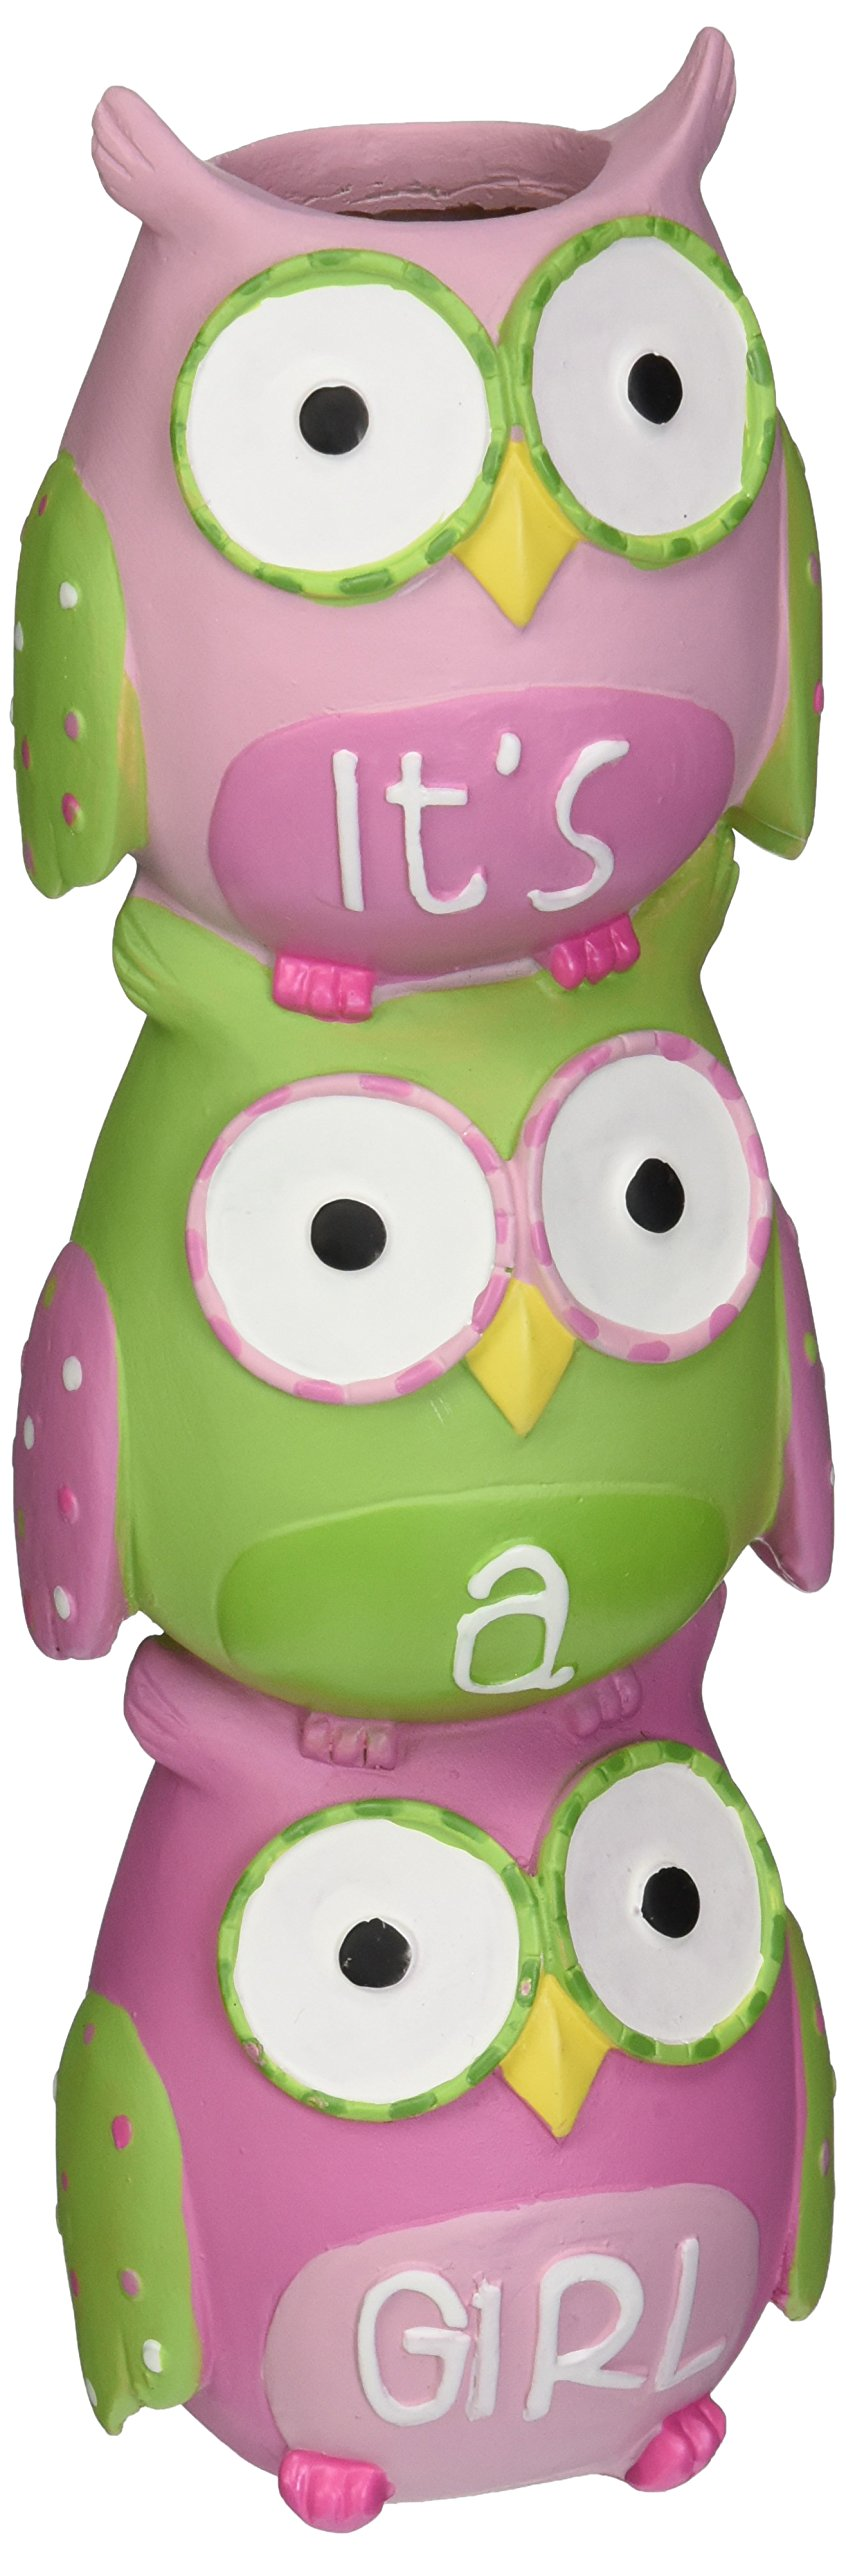 Whimsical Pink Owl Vase with ''It's A Girl'' Adorable Baby Shower or Nursery Decor